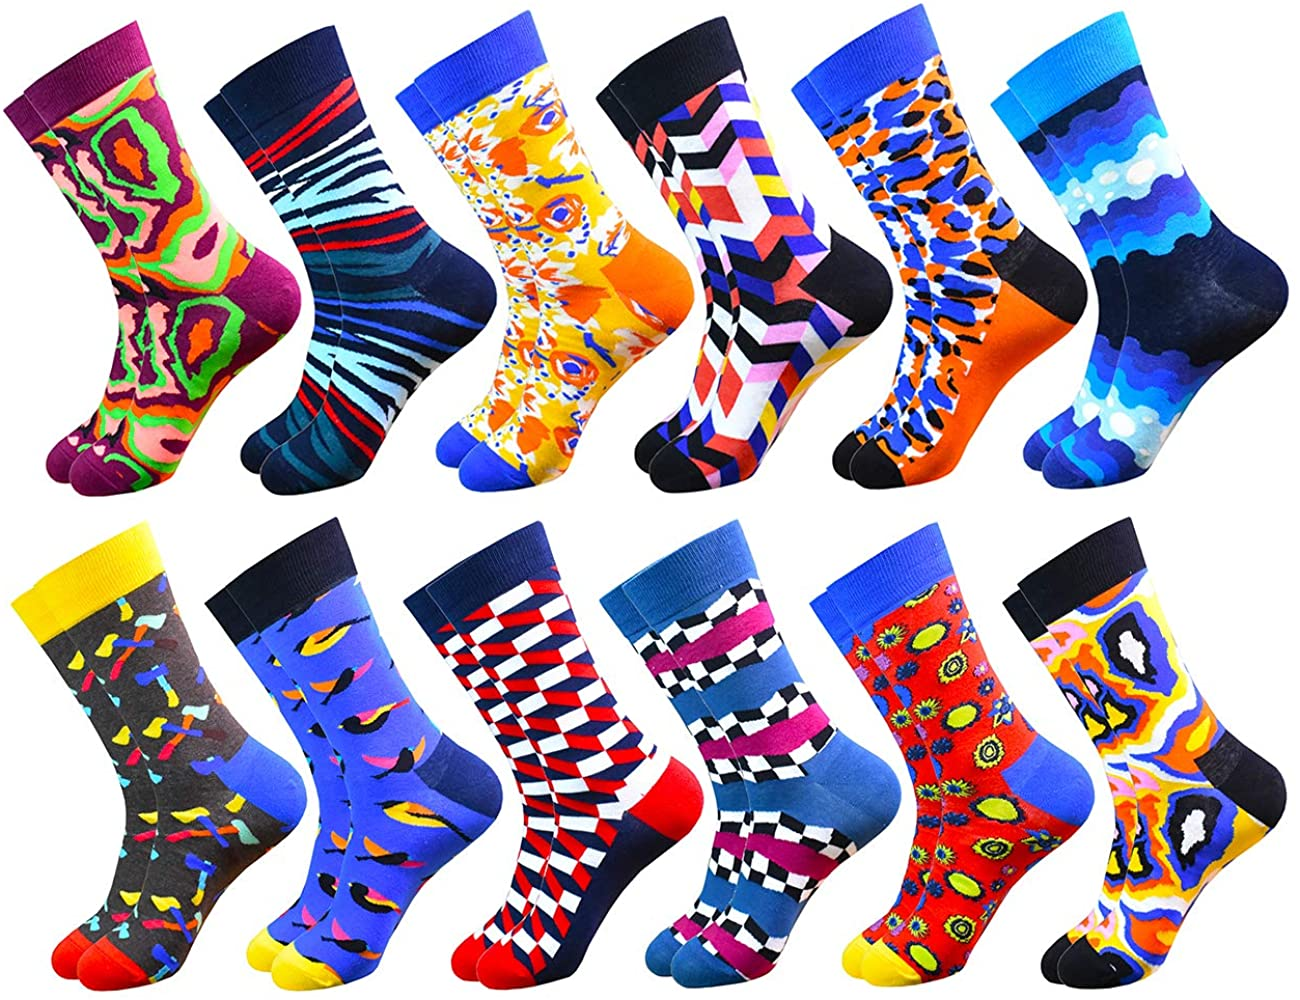 WEILAI Mens Funky Colorful Novelty Cool Design Crazy Comfort Cotton Casual Dress Crew Socks